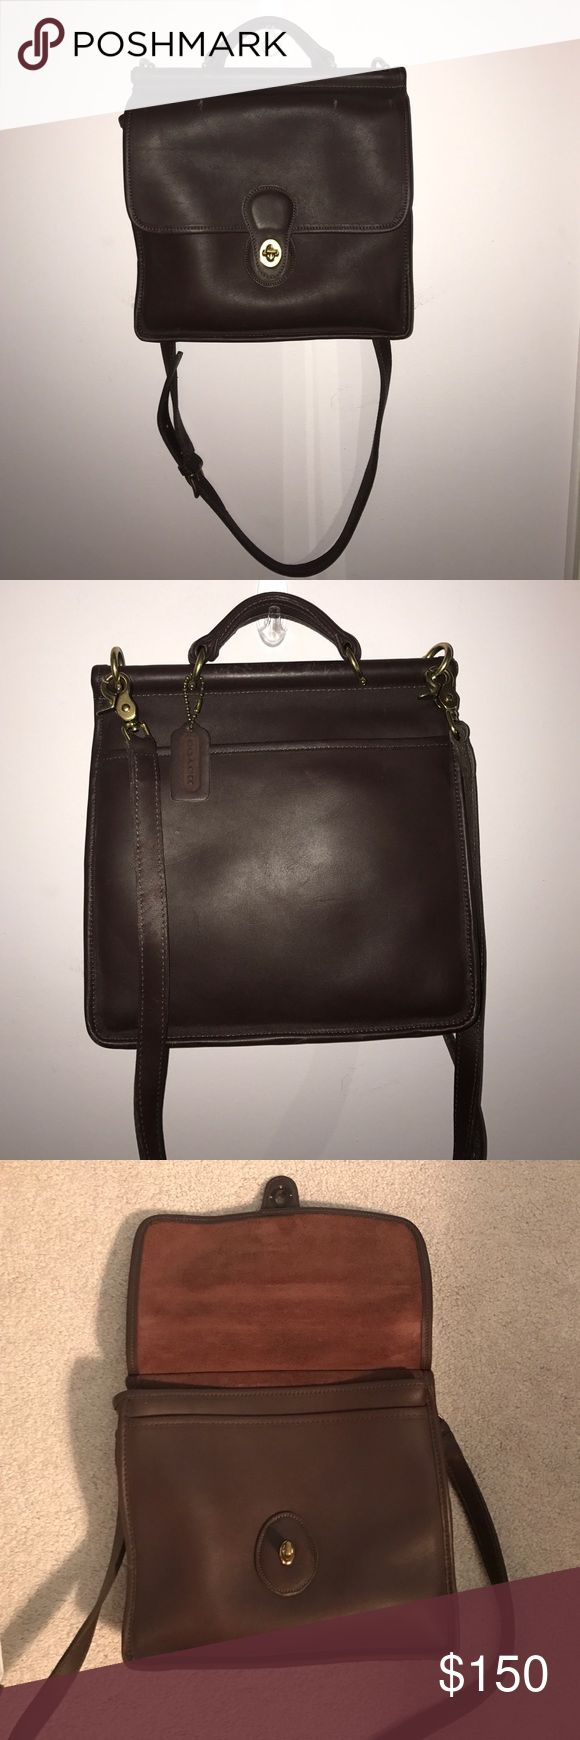 "⚡️LOWEST PRICE! Coach Leather Bag Vintage leather Coach Messenger bag in good condition. Dimensions are 10""x10.5"". Over the shoulder adjustable strap. Minor wear. Feel free to make an offer! :) Coach Bags Crossbody Bags"